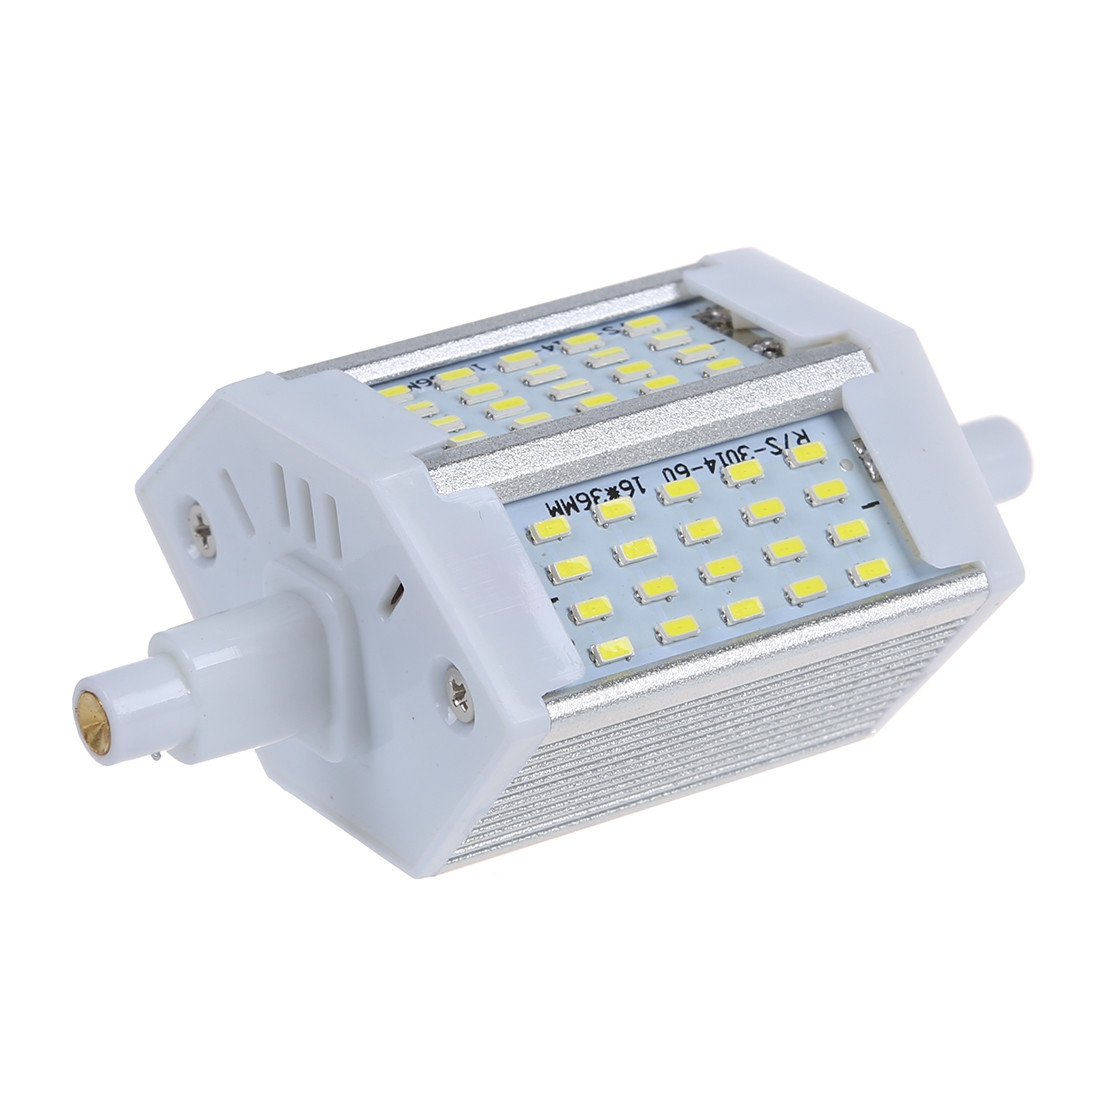 Bombilla Led R7s 78mm Nuevo R7s 78mm 60 3014 Smd Led Bombilla Lampara Luz Blanco 6w Of Bombilla Led R7s 78mm Mejor Portalamparas Bombillas Led R7s 78mm